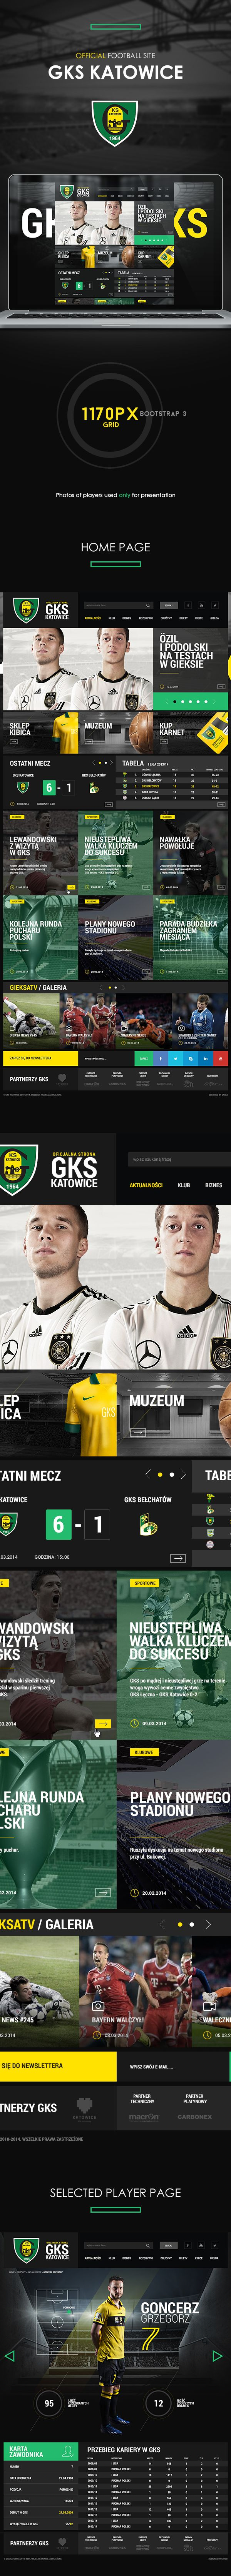 Official Football Site - GKS Katowice by Karol Kos, via Behance